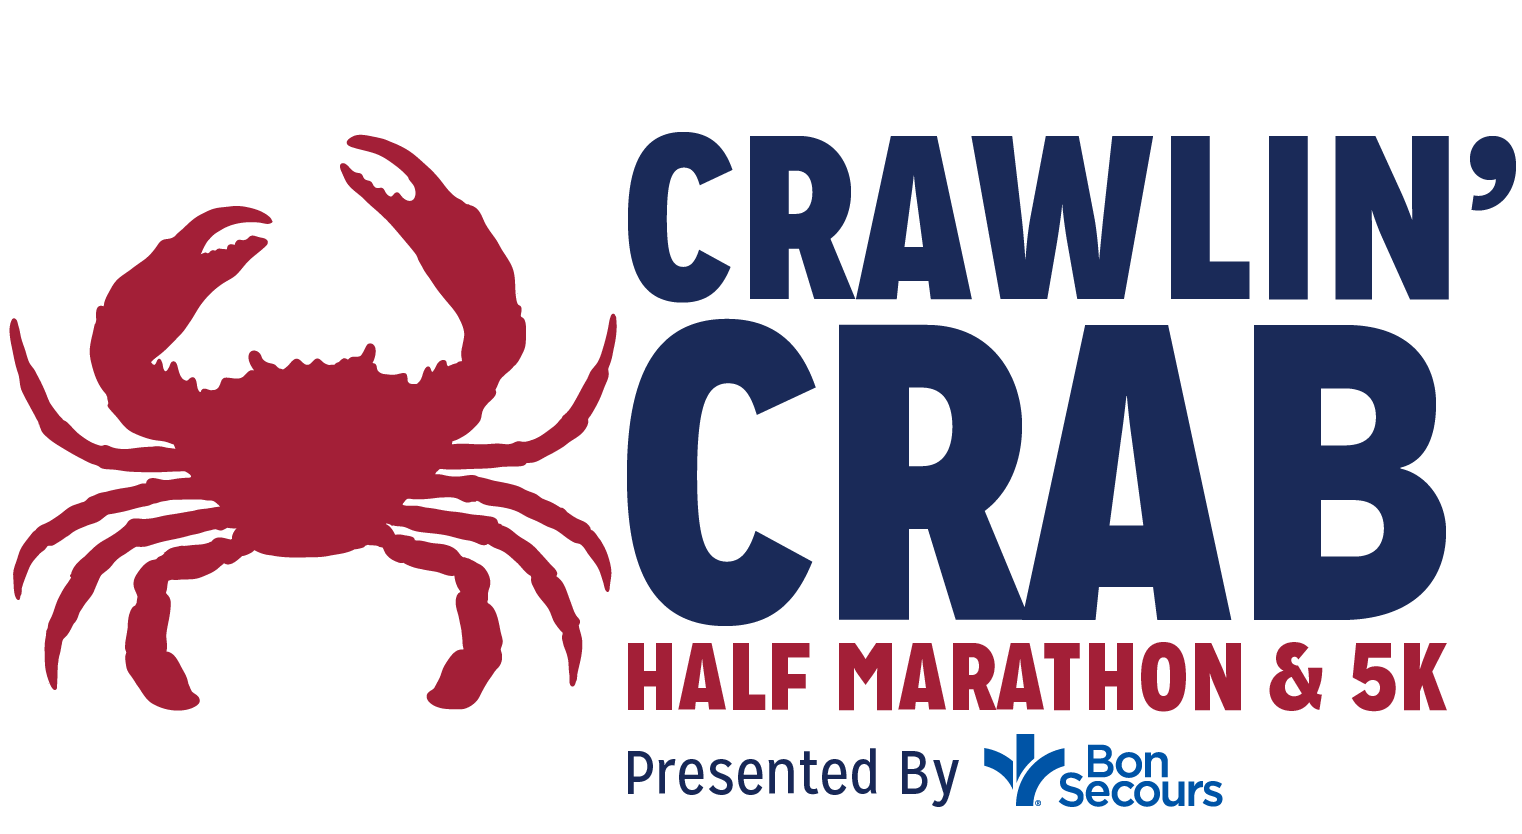 Crawlin' Crab Half Marathon